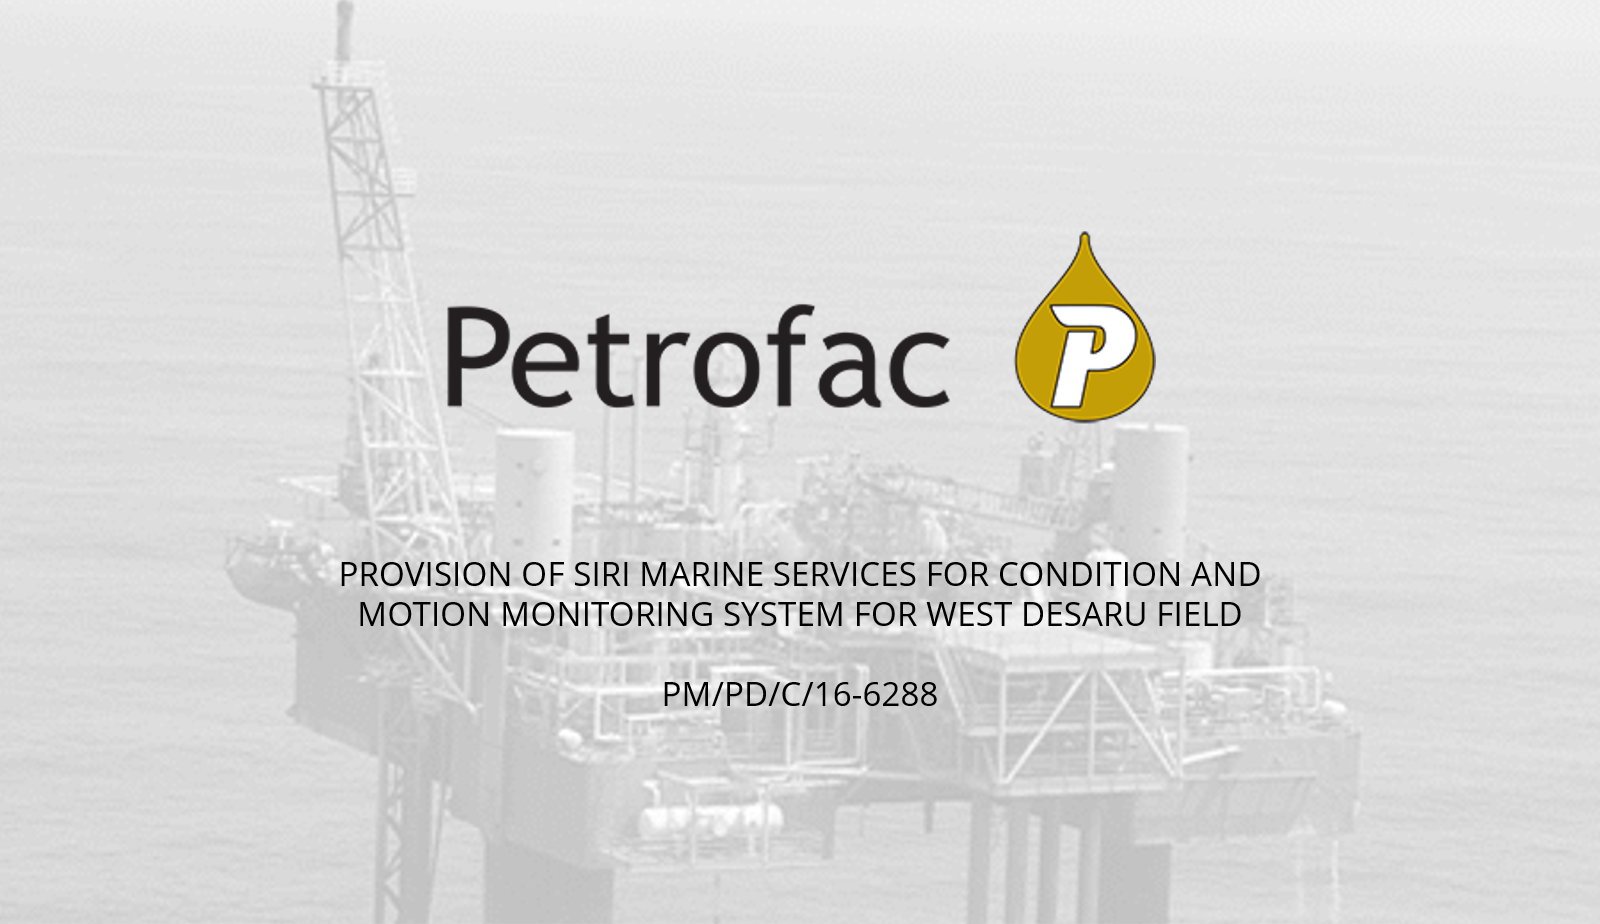 Provision of Siri Marine Services for Condition and Motion Monitoring System for West Desaru Field for Petrofac (Malaysia-PM304) Limited